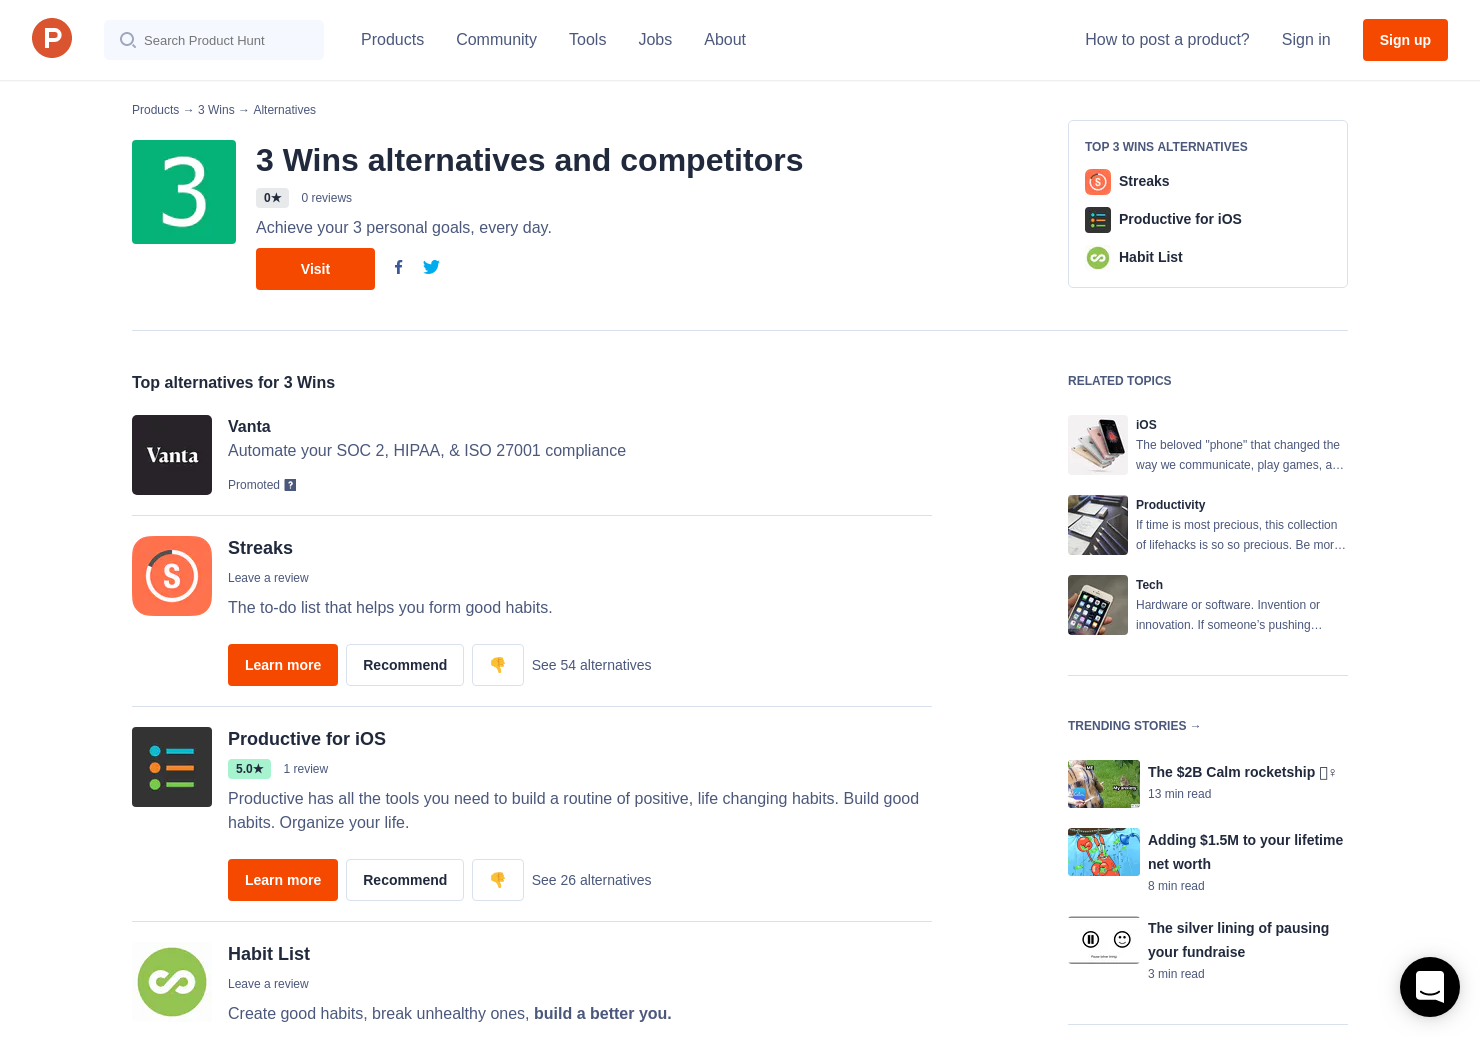 5 Alternatives to 3 Wins 2 0 for iPhone | Product Hunt